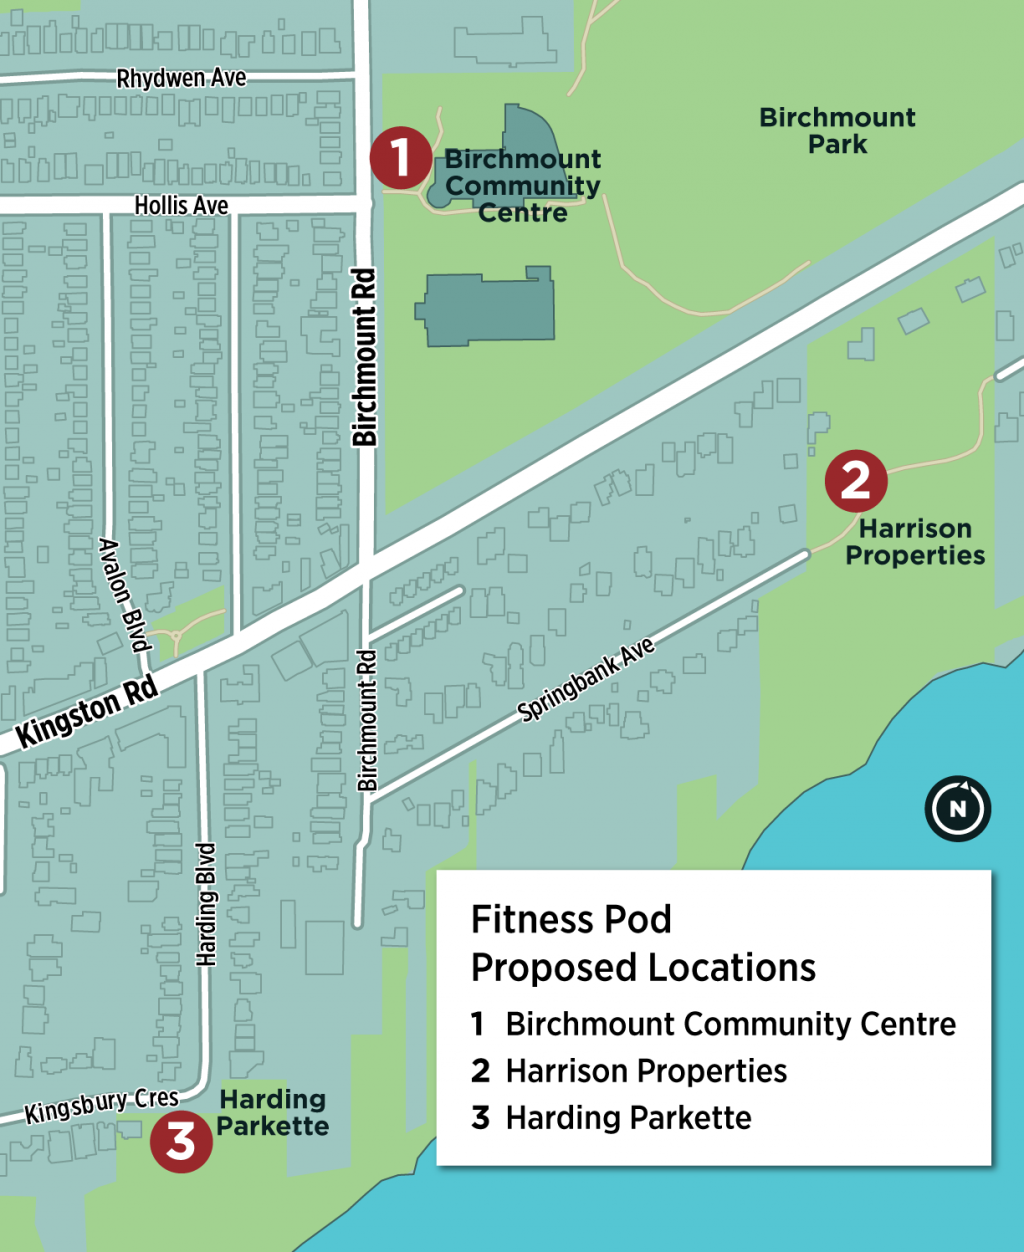 A keymap which provides an overview of the three location options for the outdoor fitness pod. The three location options are Birchmount Community Centre, Harrison Properties and Harding Parkette. One location will be selected based on feedback from the community.